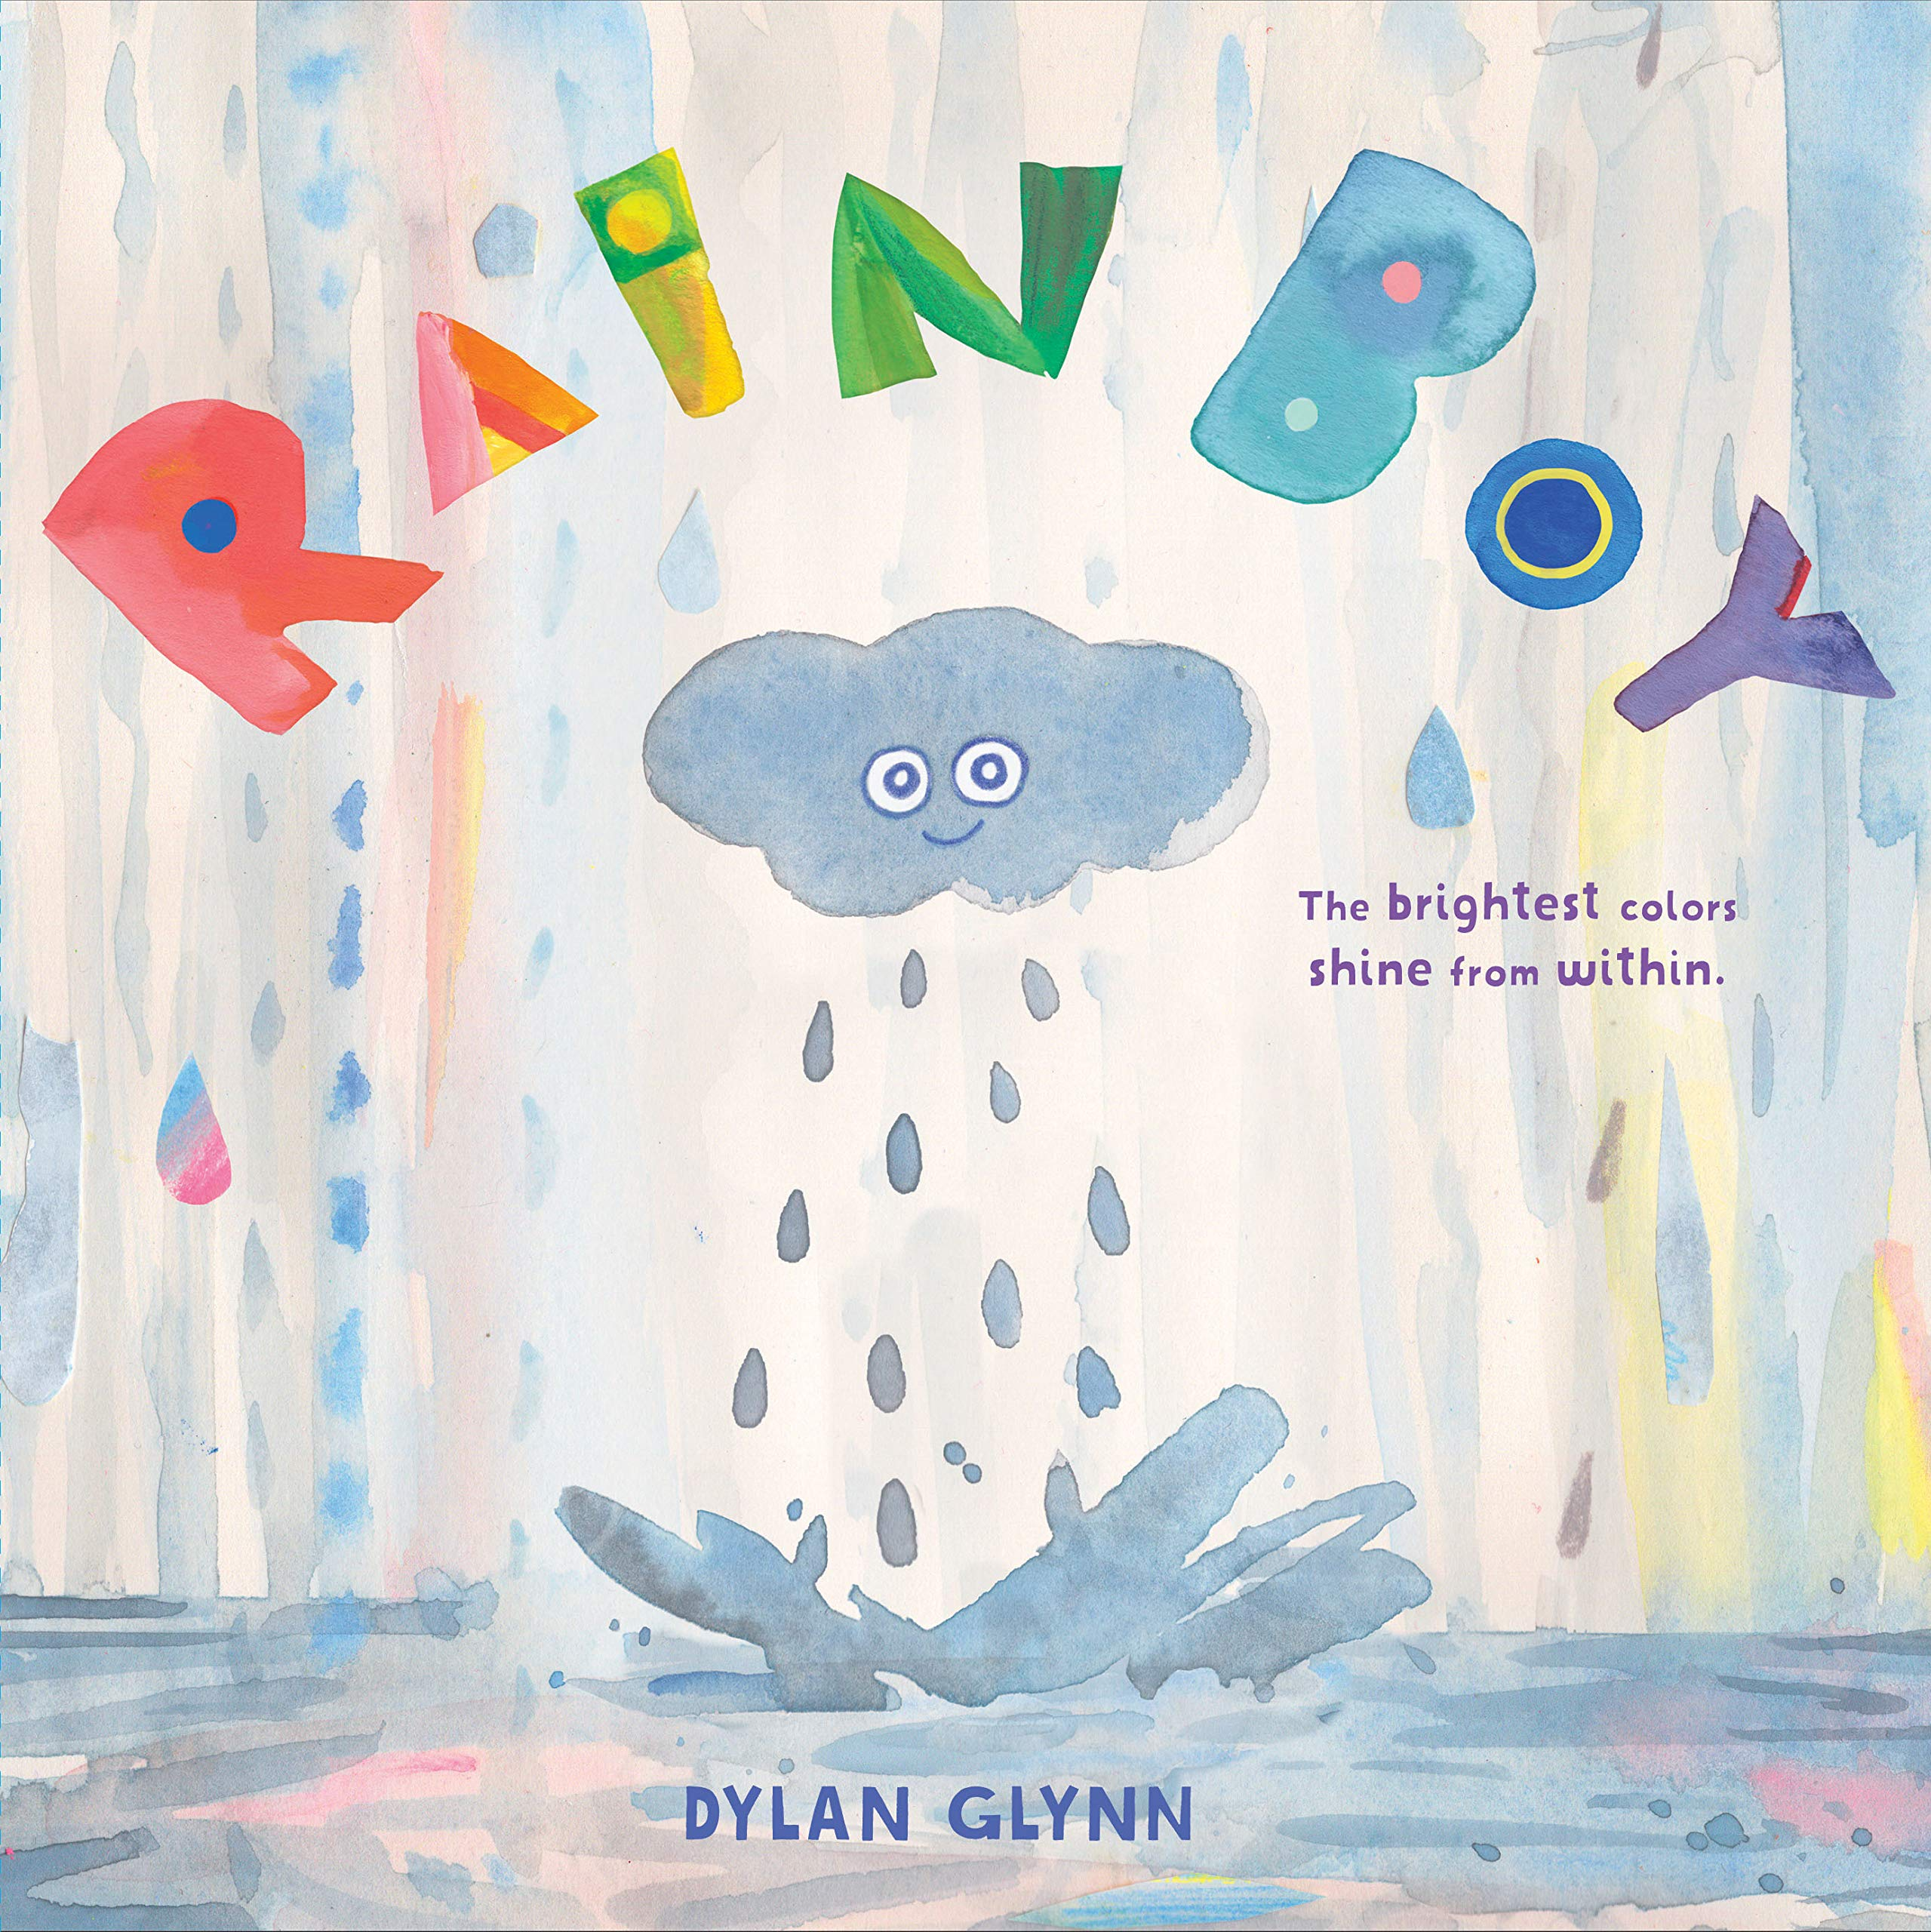 Rain Boy: (Kindness Books for Kids and Children, Teaching Empathy,  Inclusion, and Diversity): Glynn, Dylan: 9781452172804: Amazon.com: Books